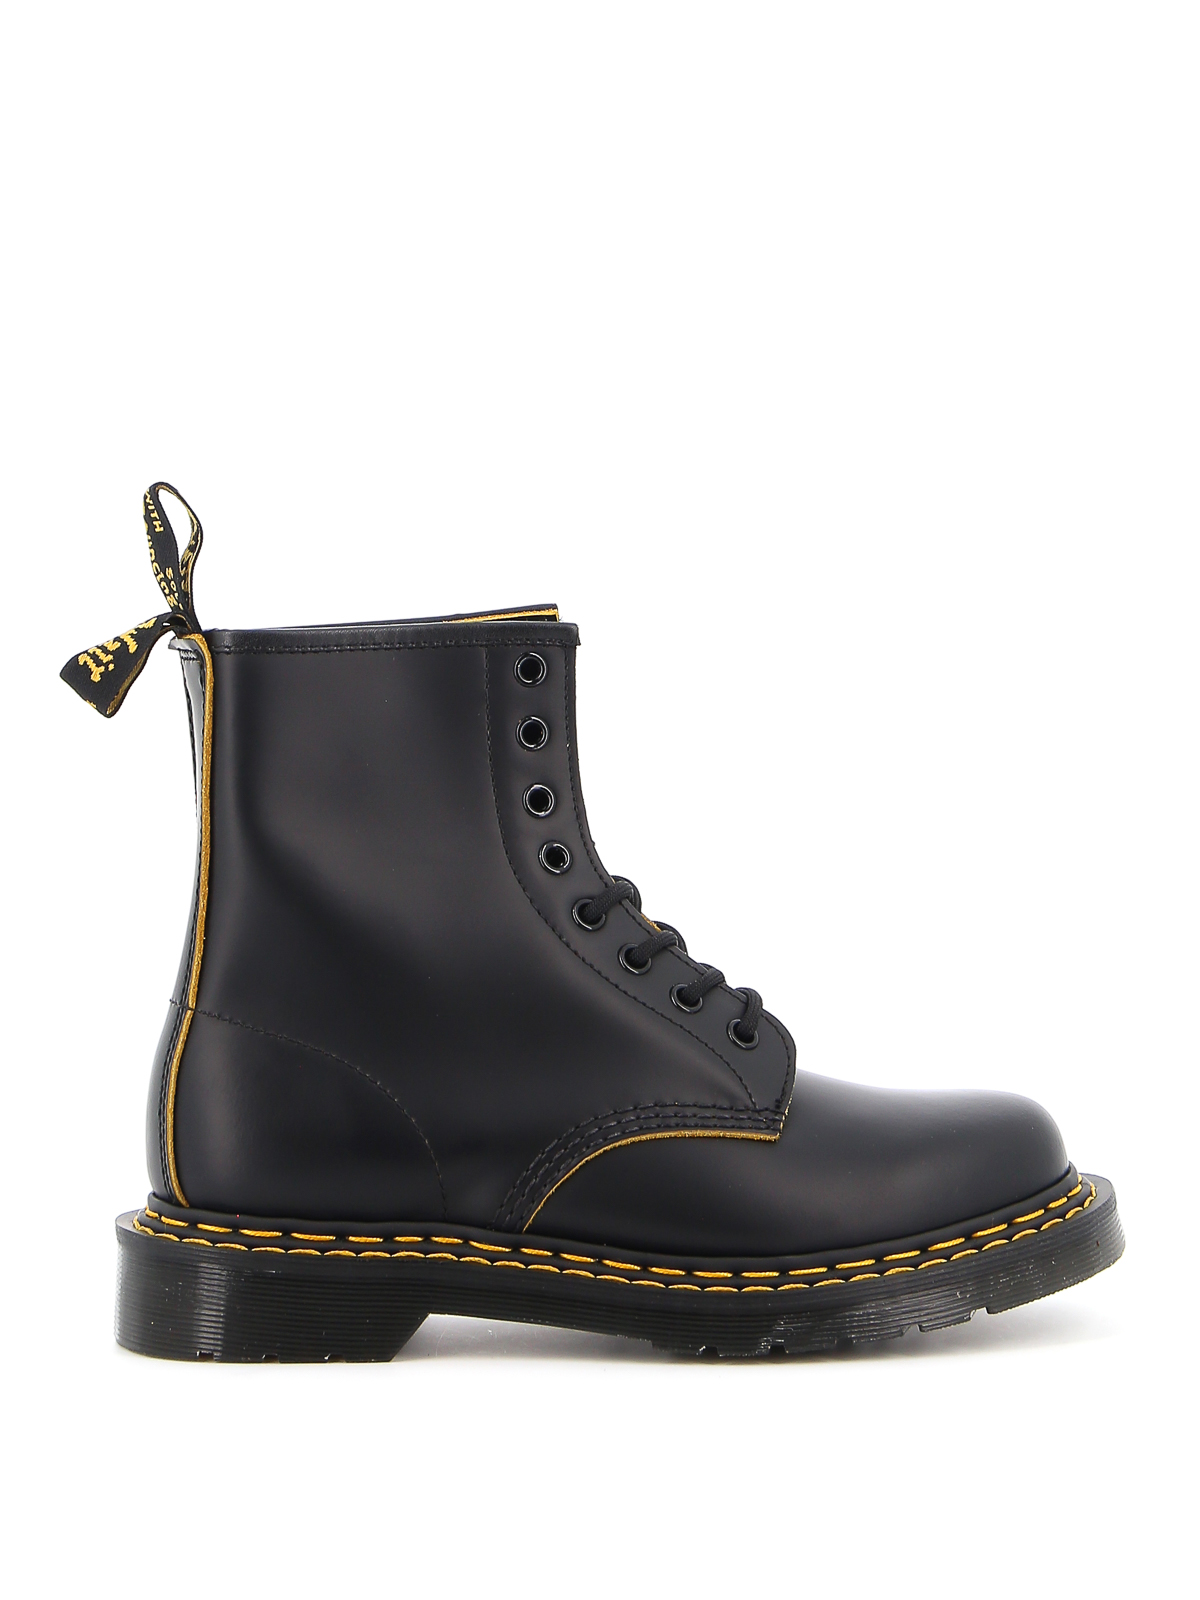 Dr. Martens 1460DS SMOOTH SLICE ANKLE BOOTS